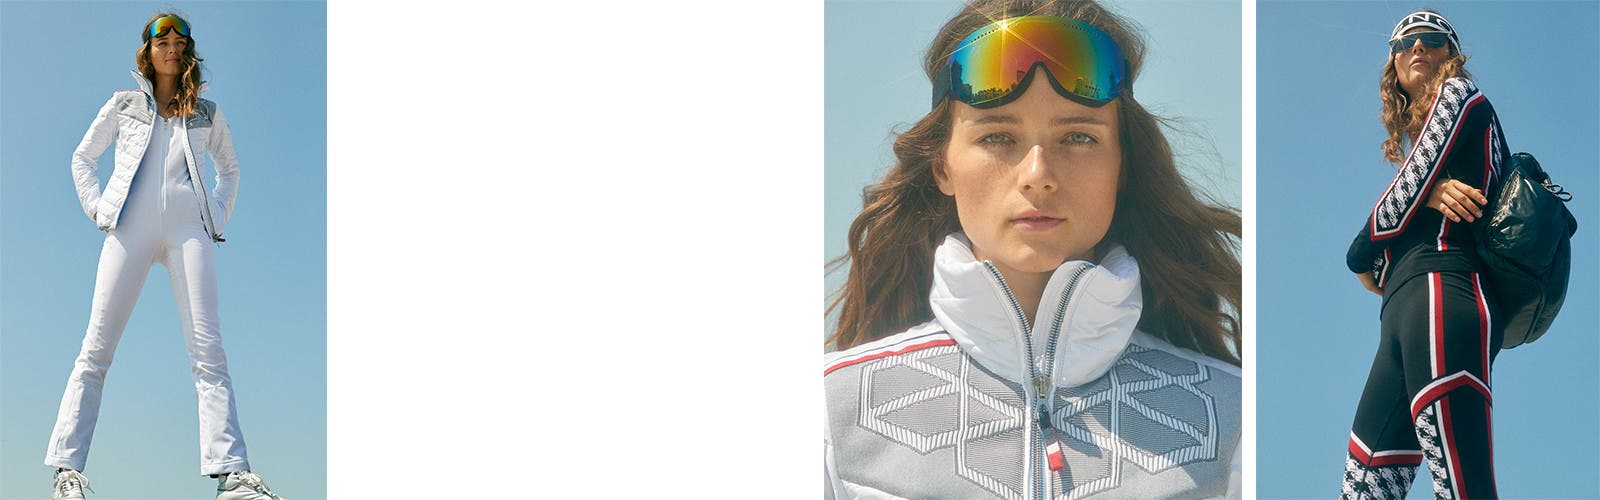 Women's clothing, shoes and accessories for winter and skiing.